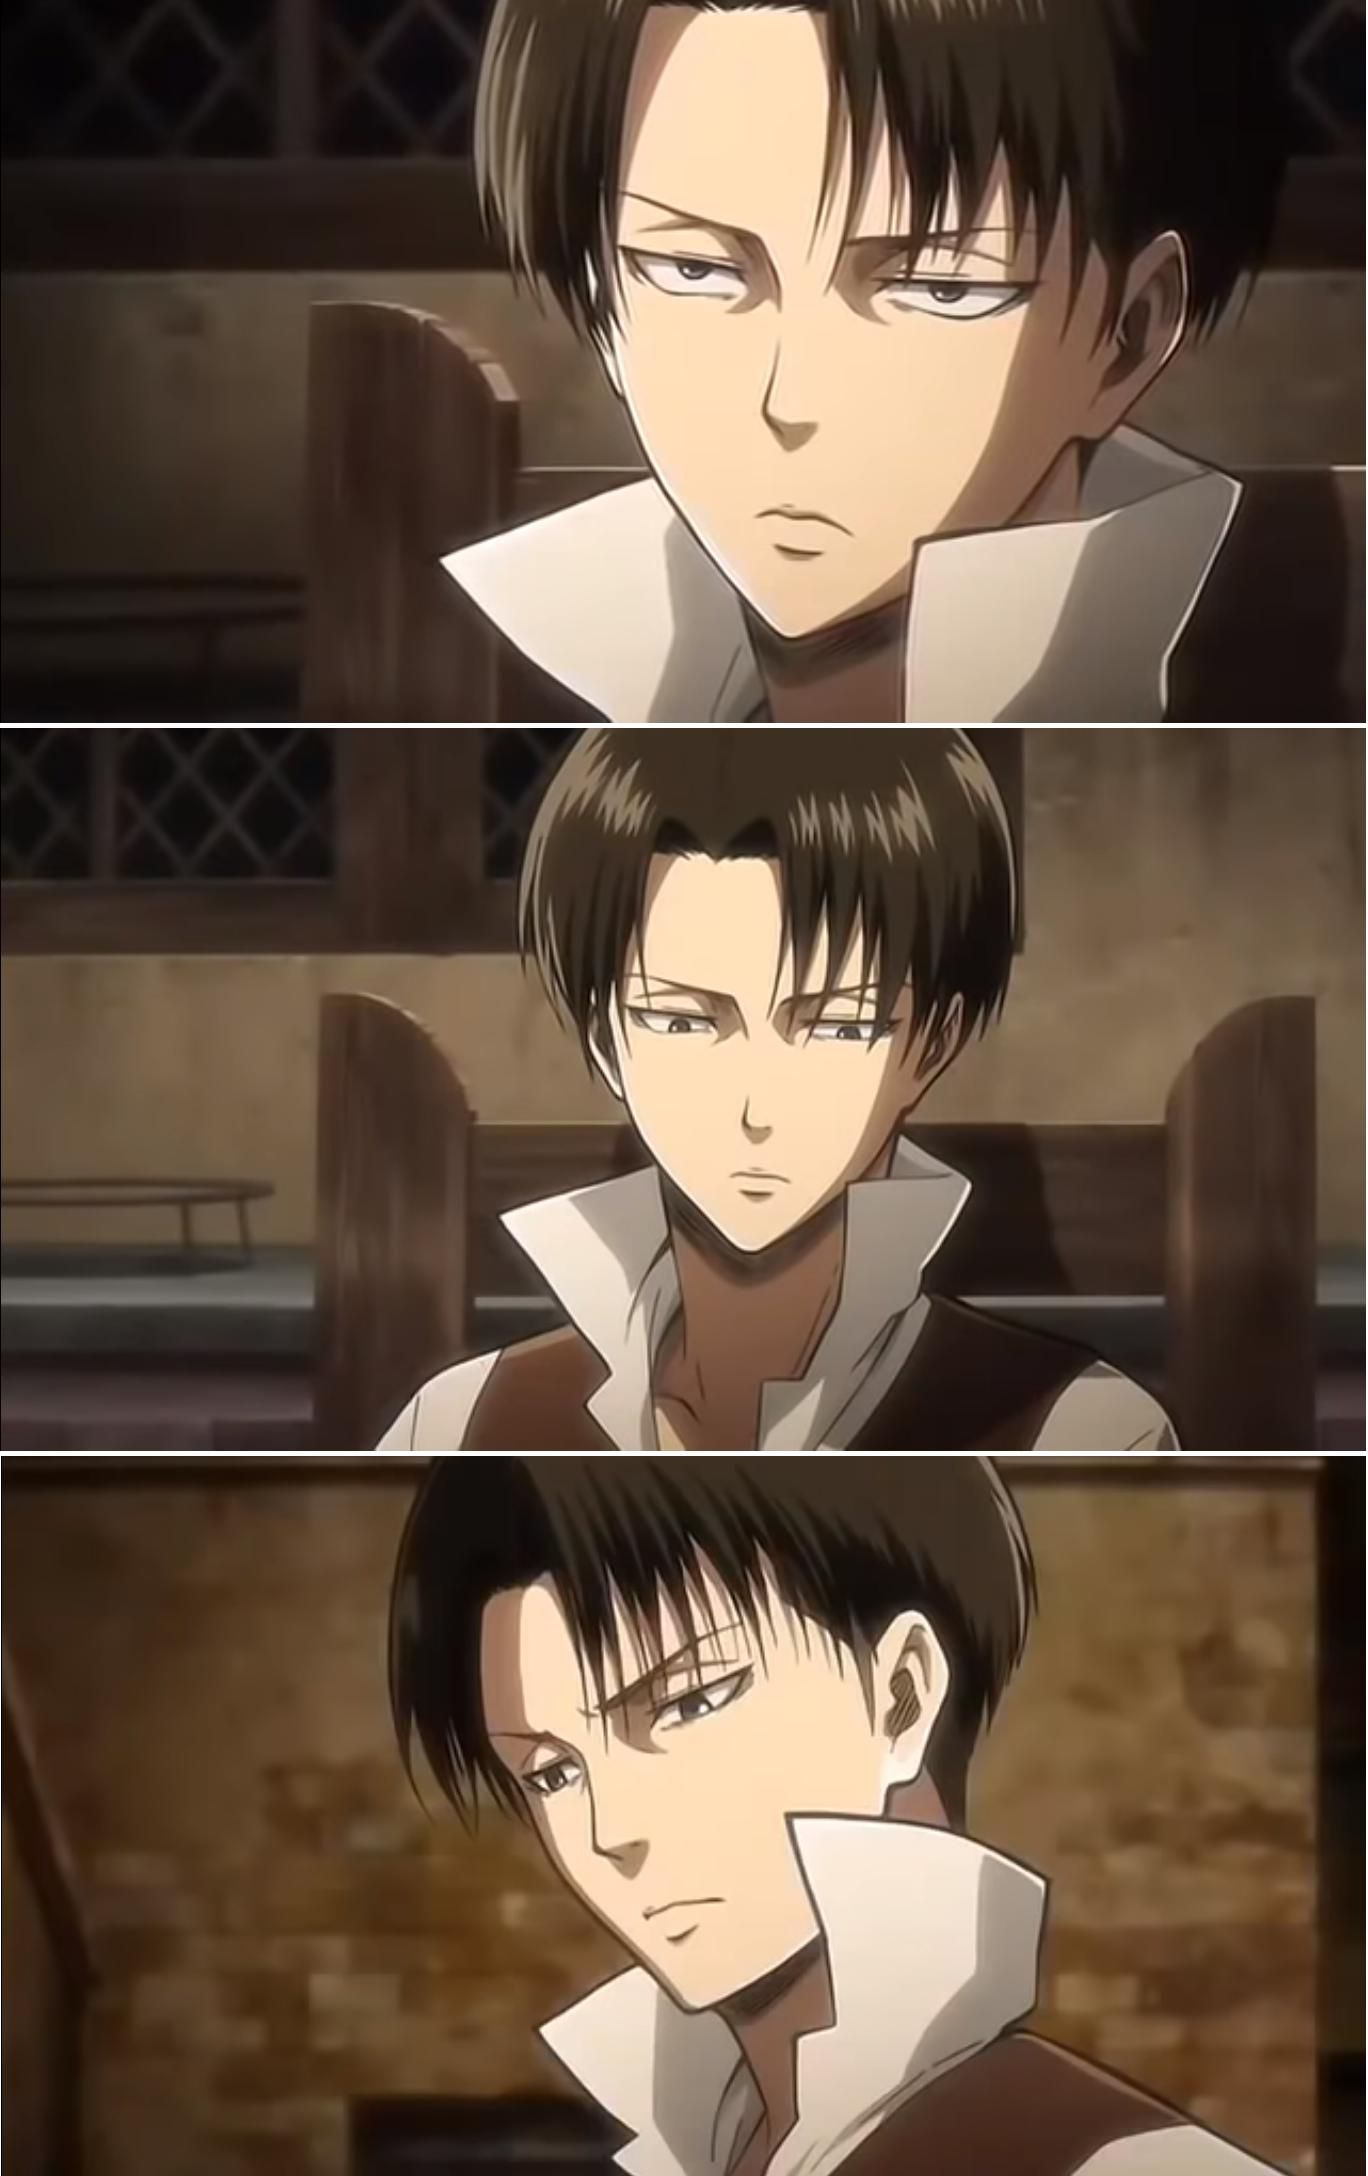 Attack On Titan A Choice With No Regrets Levi Ackerman In 2020 Attack On Titan Levi Attack On Titan Anime Attack On Titan Art